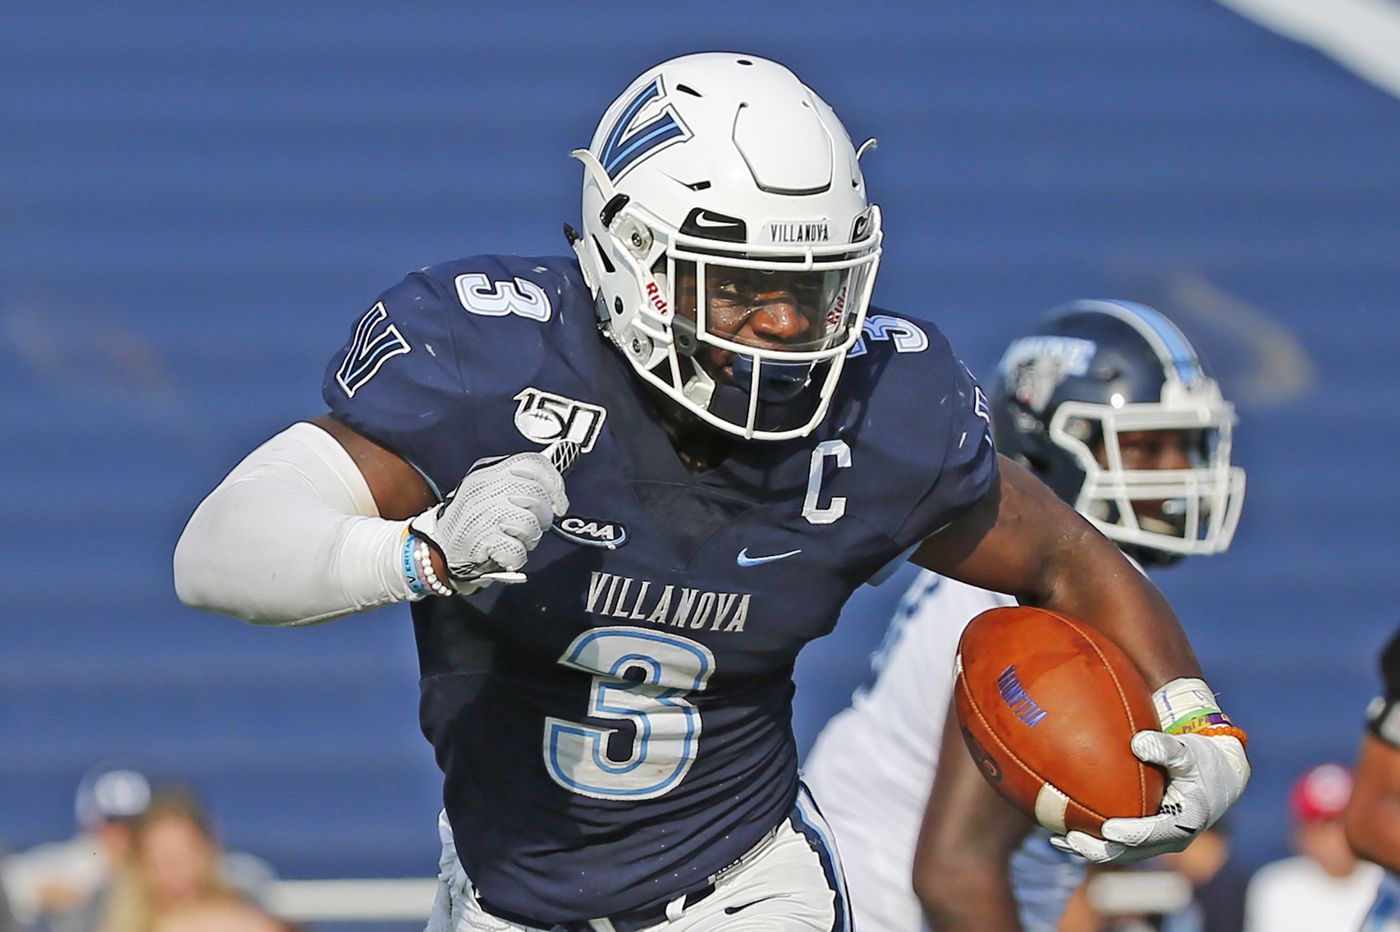 Villanova's Justin Covington waits for one last chance to impress pro football scouts. He may not get it. | Mike Jensen